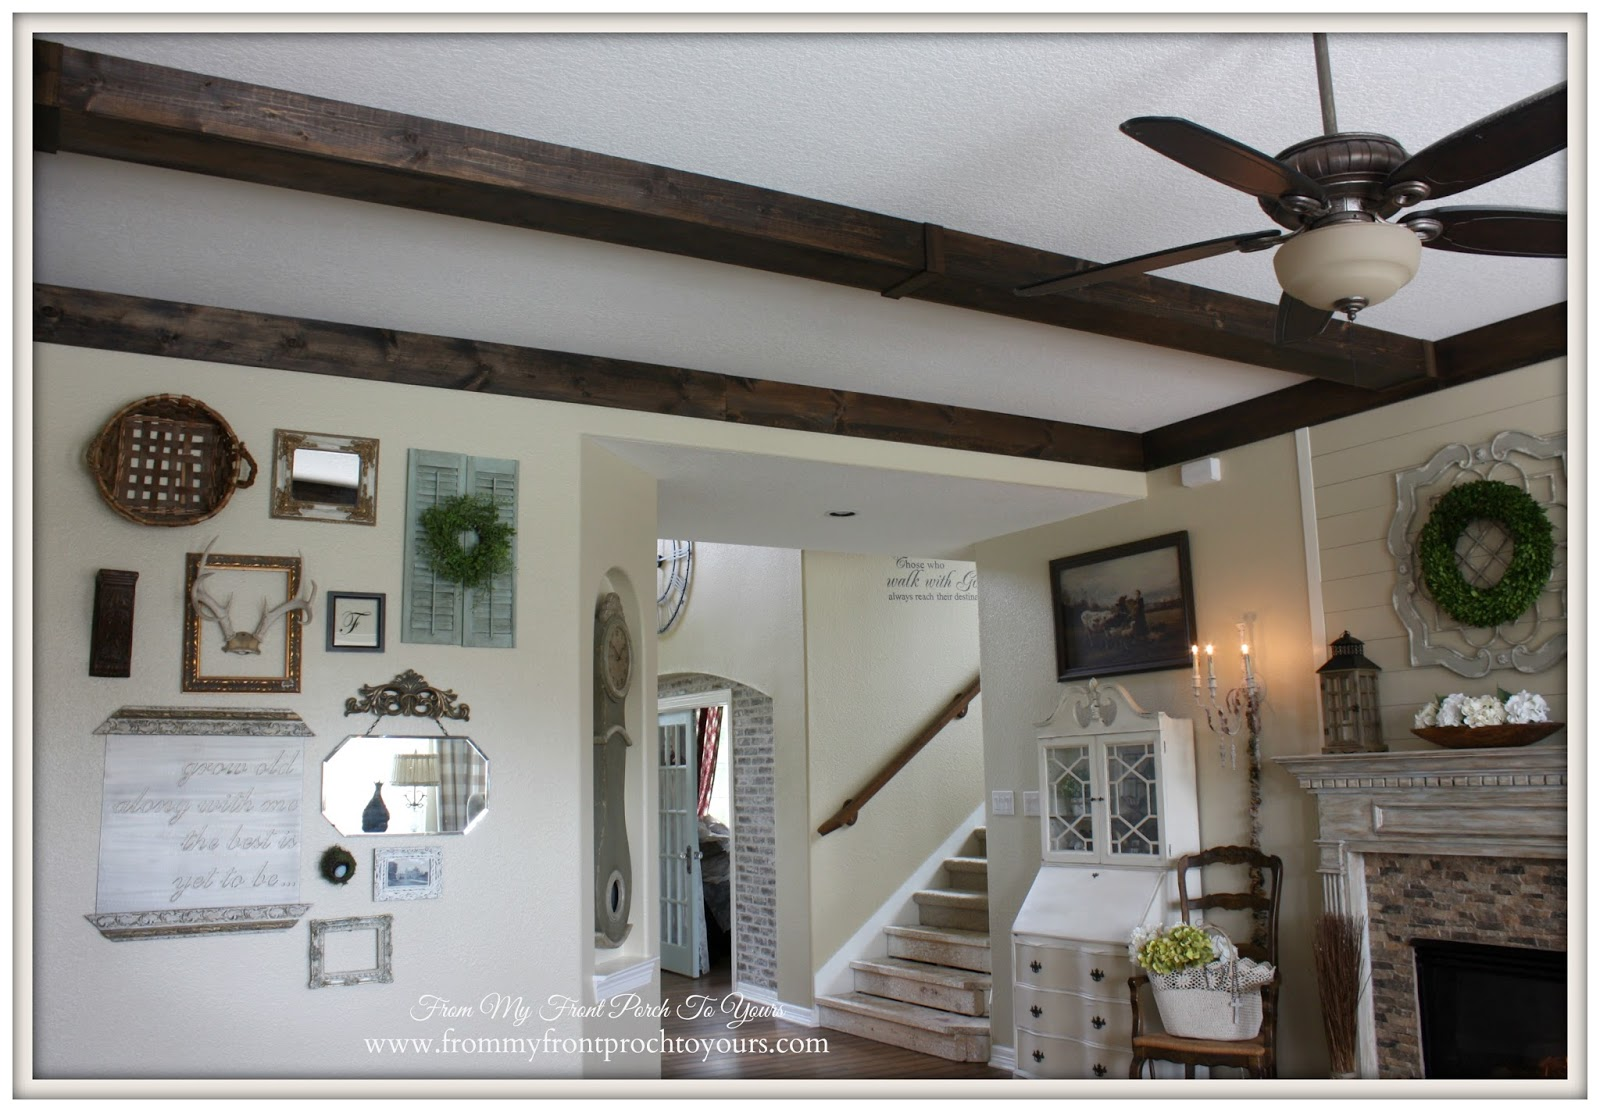 French Country Charm added with DIY Wood Beams.- From My Front Porch To Yours